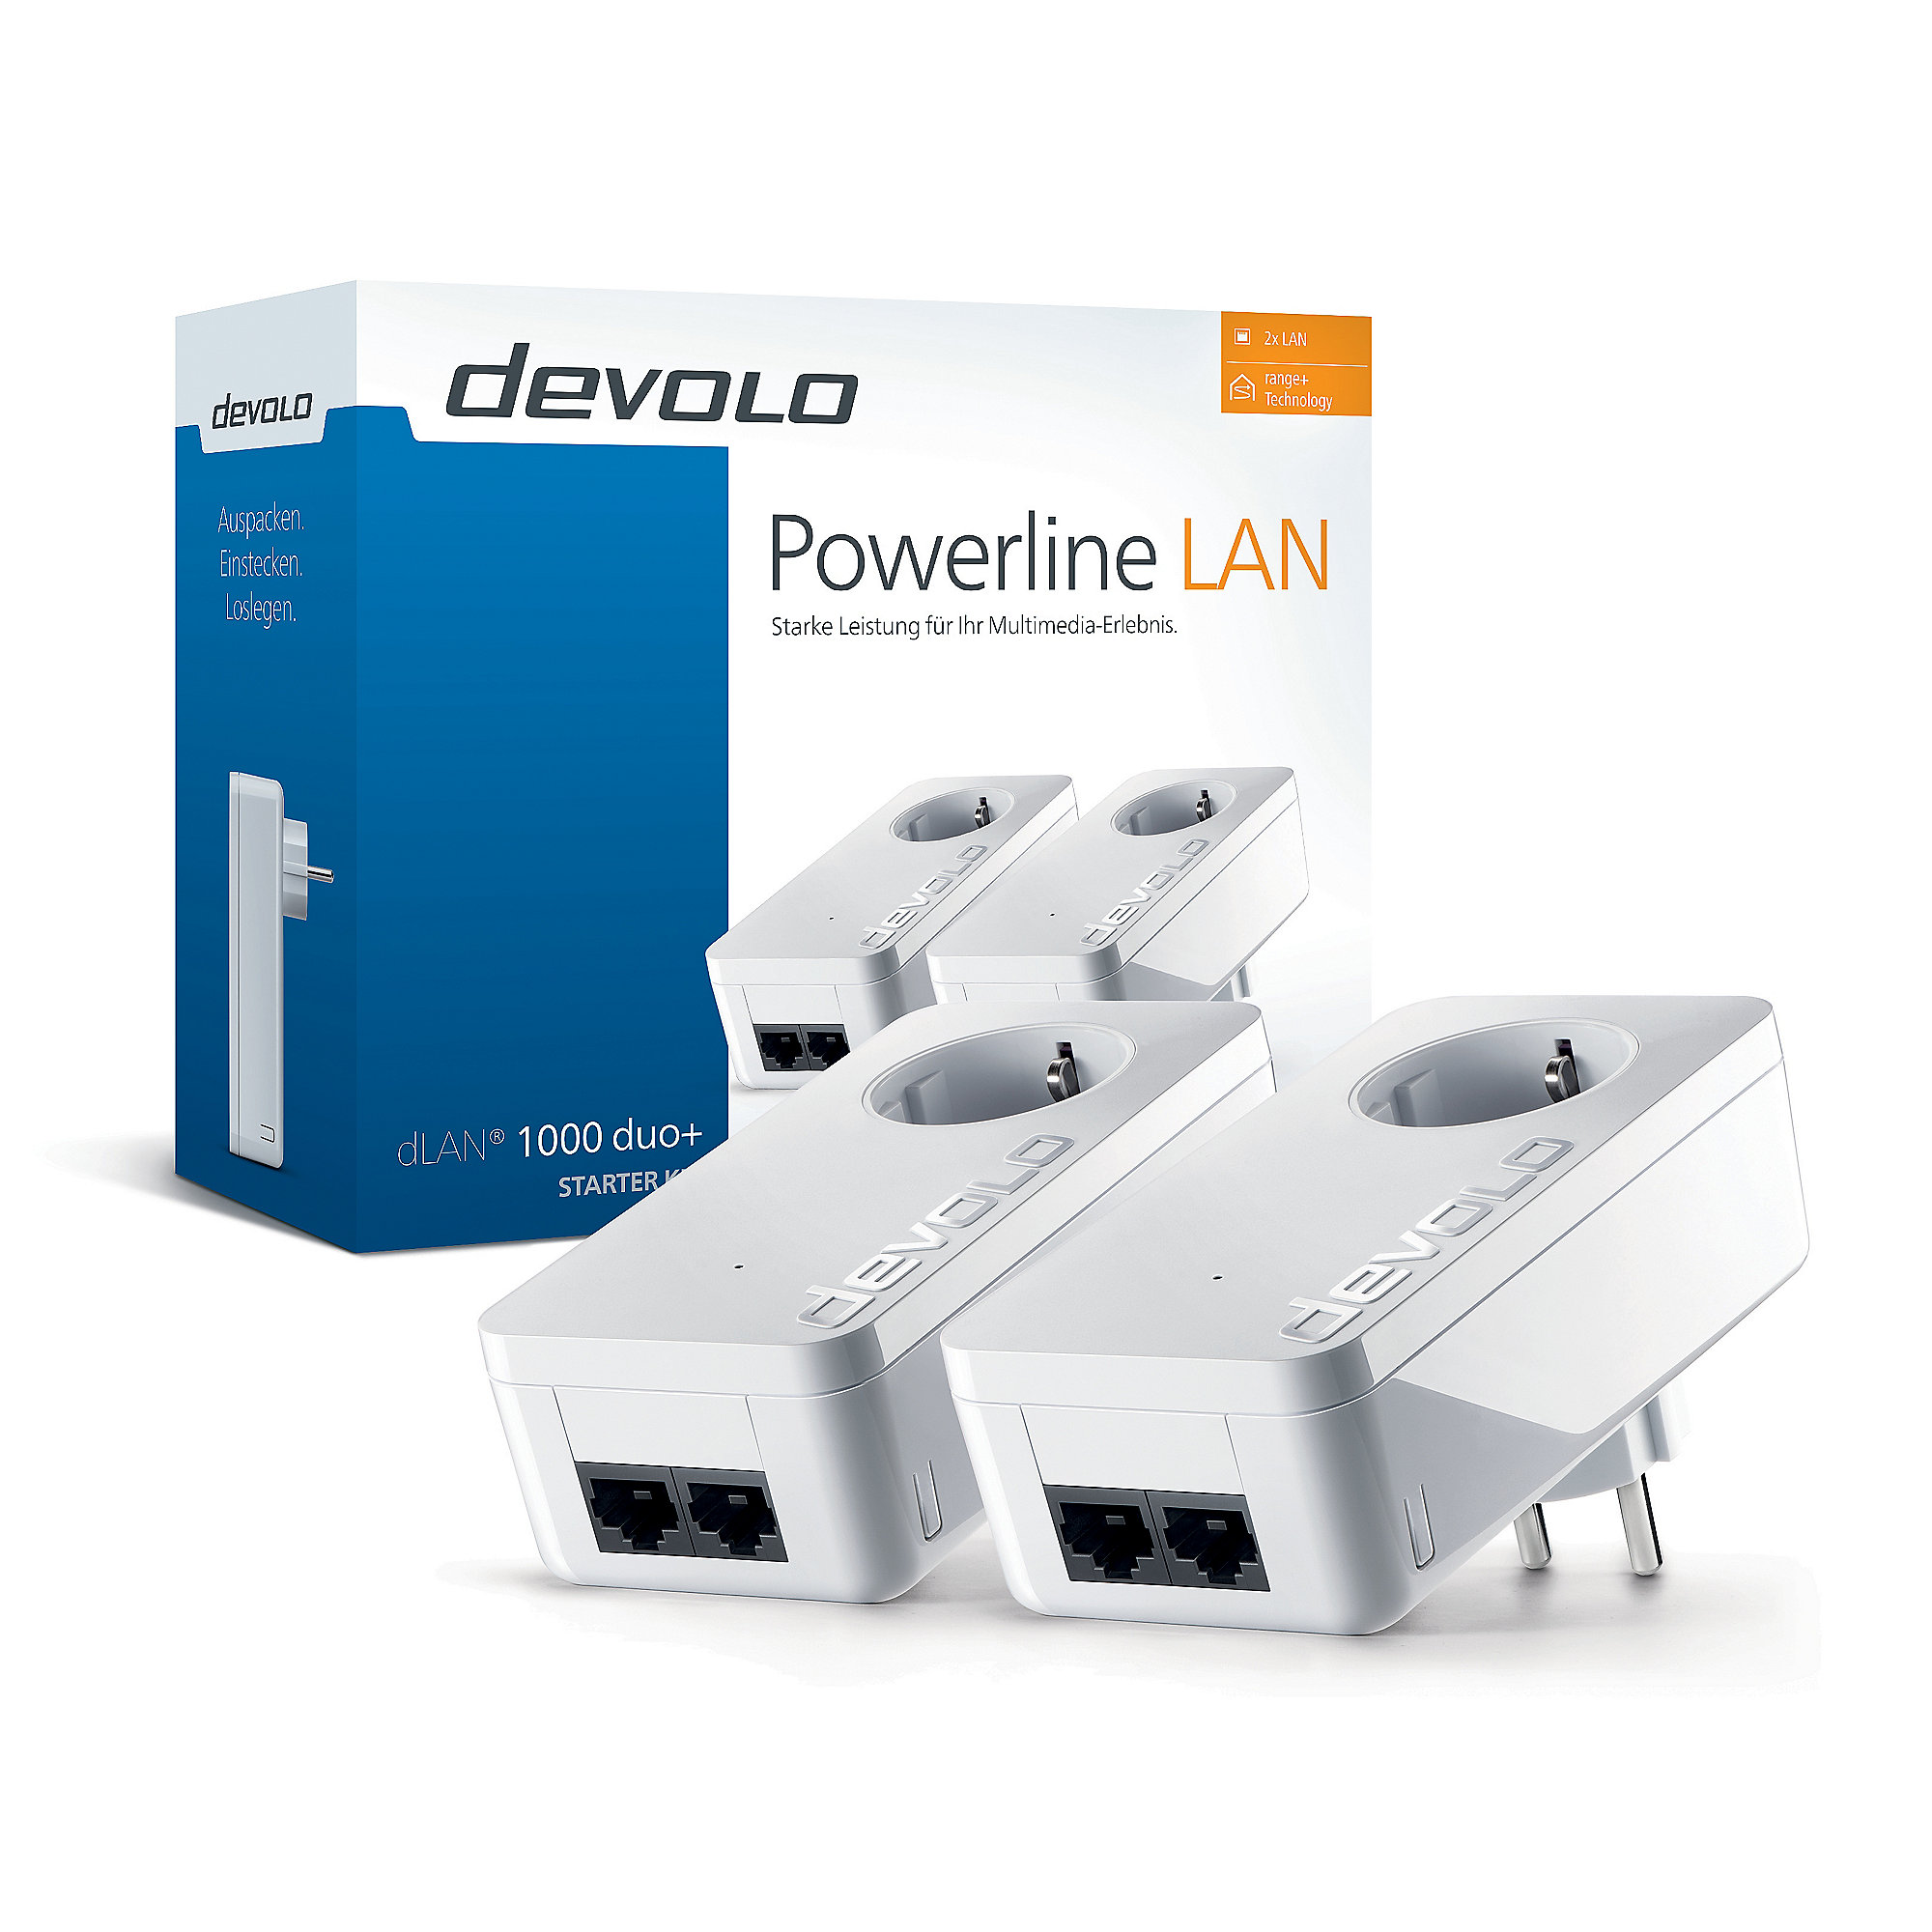 devolo dLAN 1000 duo+ Starter Kit (1200Mbit, 2x Powerline, 2xLAN, Steckdose)